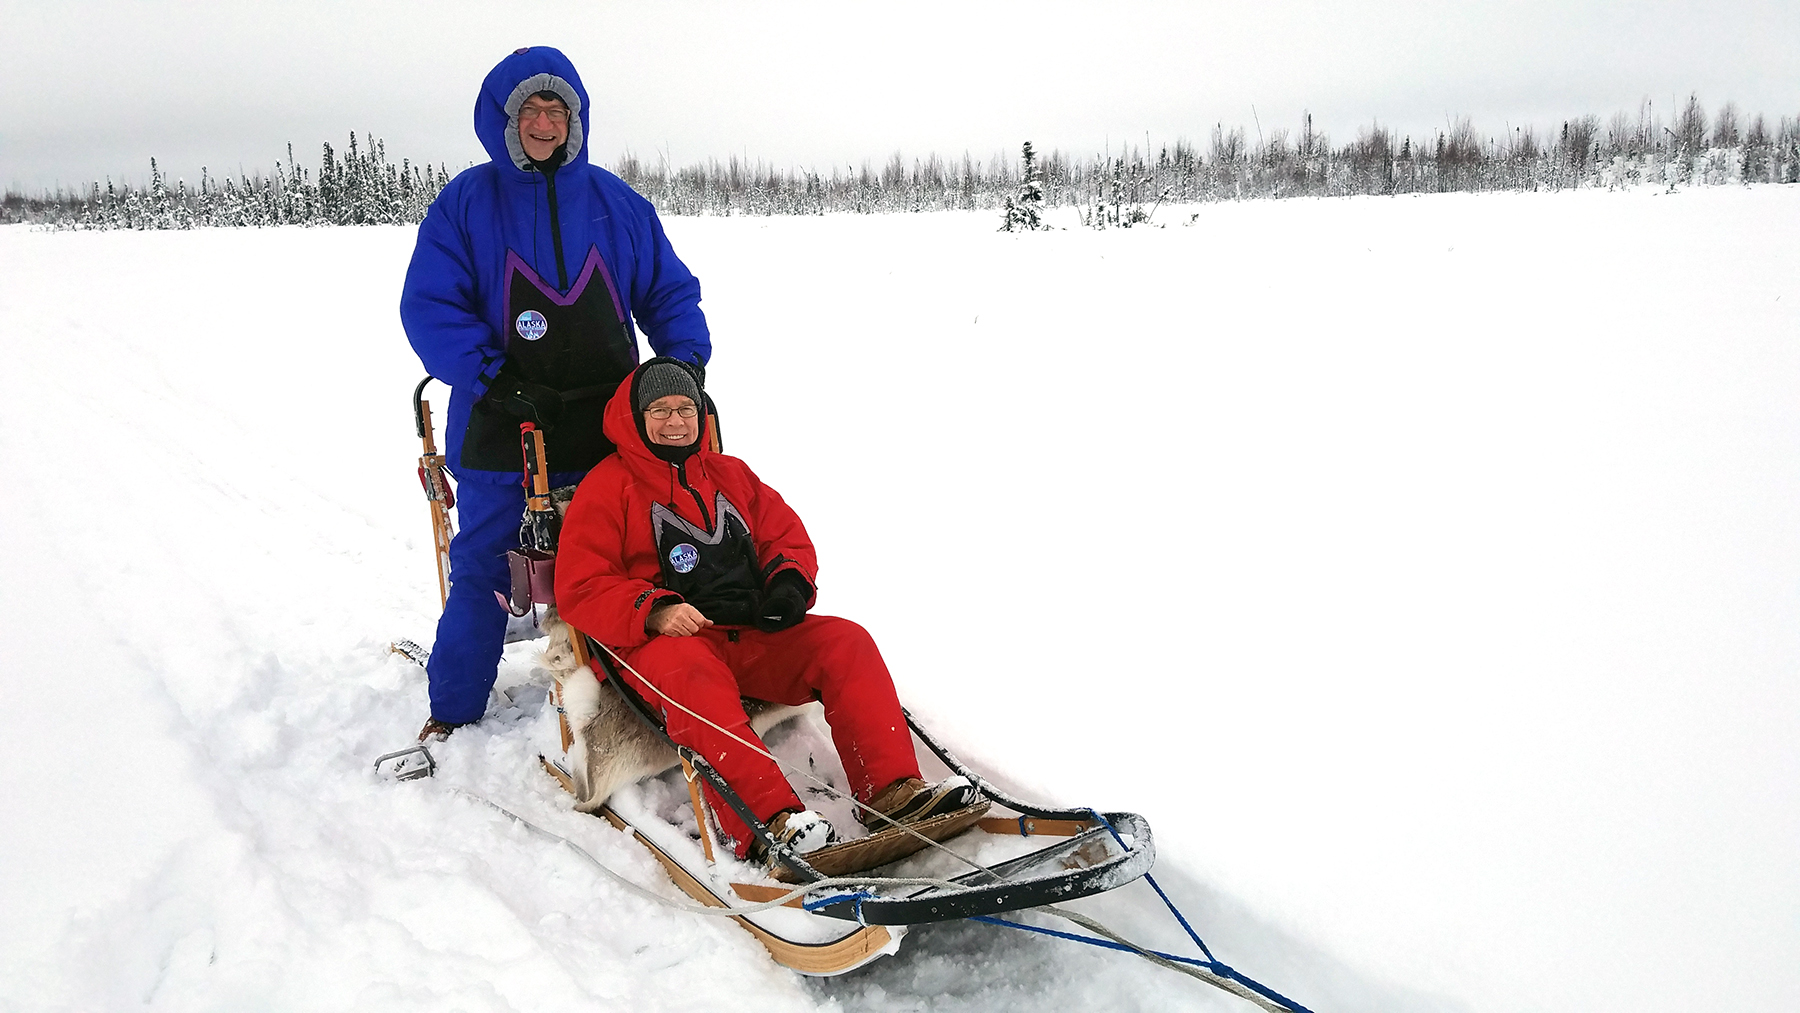 When in the tundra dogsled, Frank with Dana Totman, (Ex. Dir. of Avesta Housing, Maine) take a spin on local transportation.